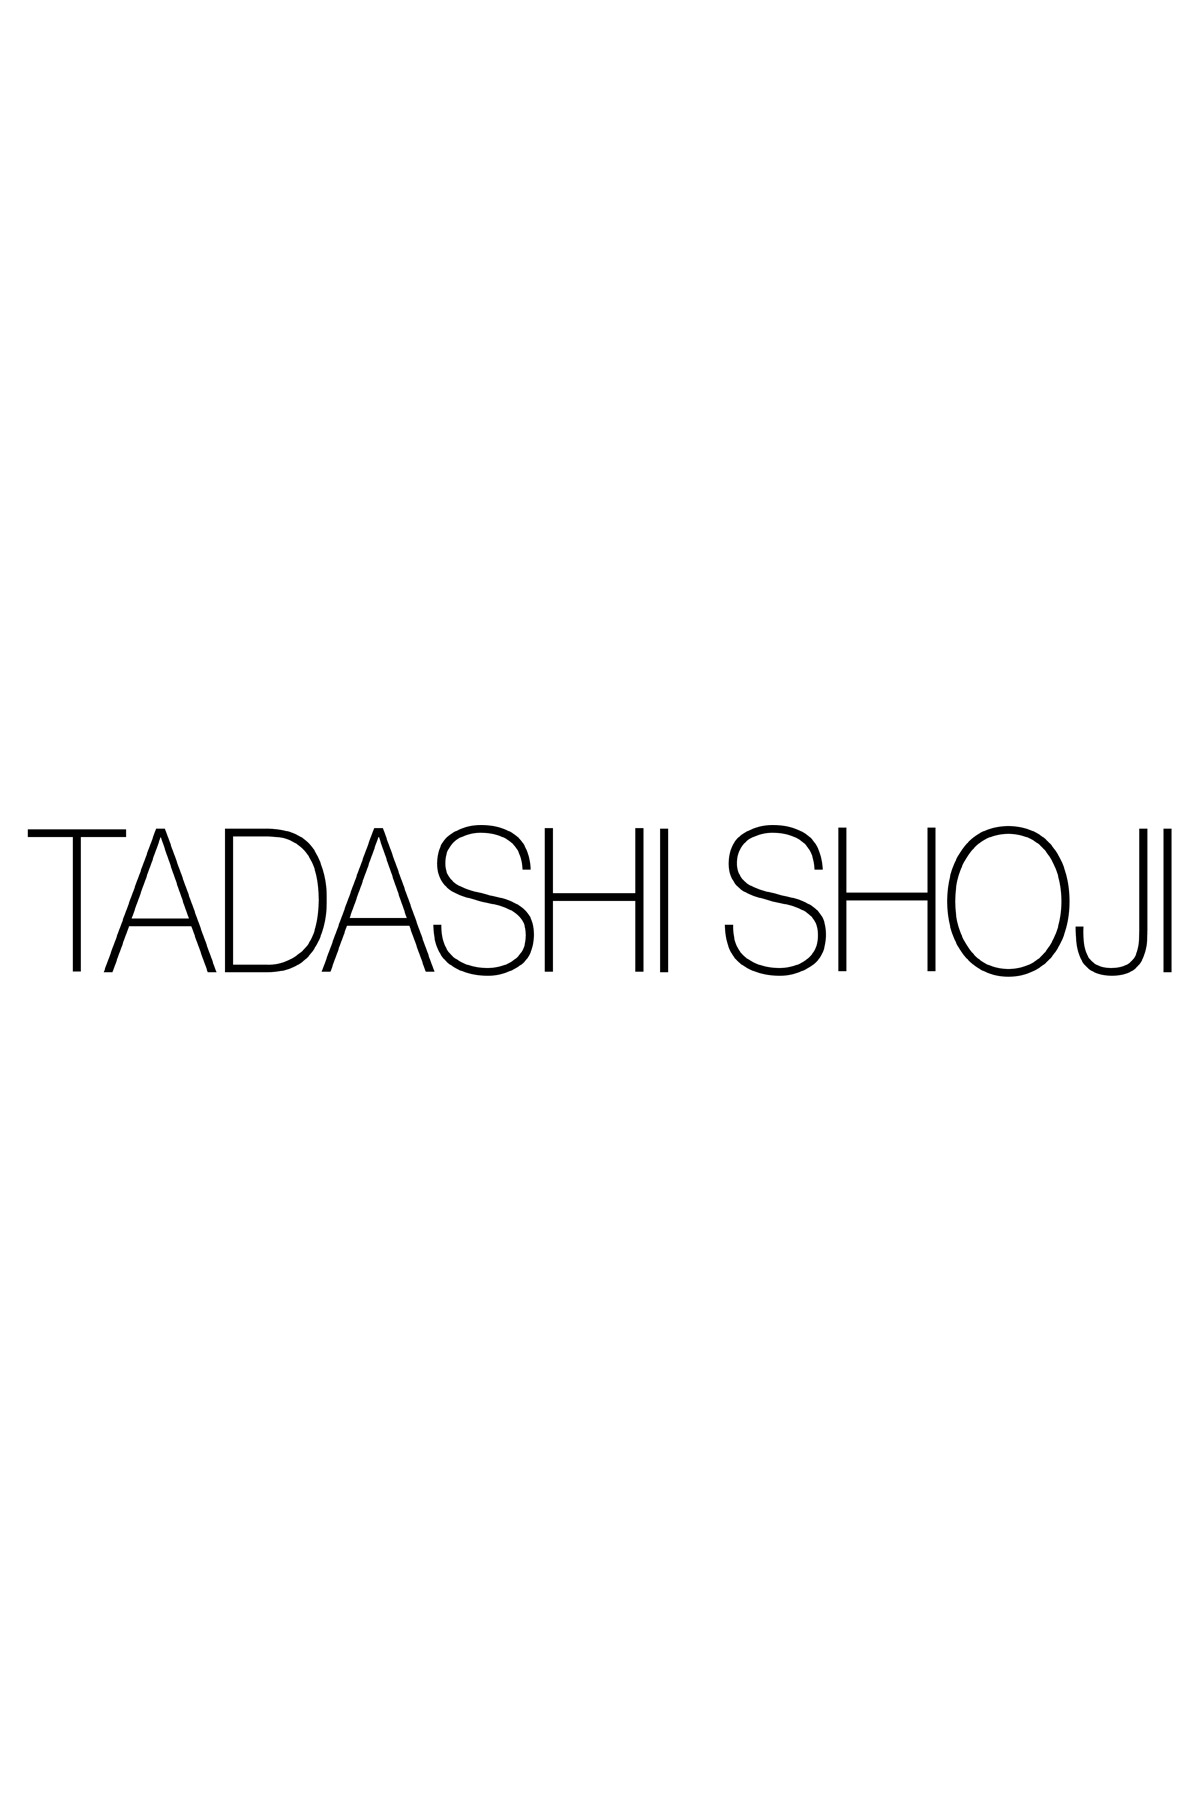 Tadashi Shoji Petite Size - Corded Embroidery on Tulle Dress with Sheer Illusion Neckline